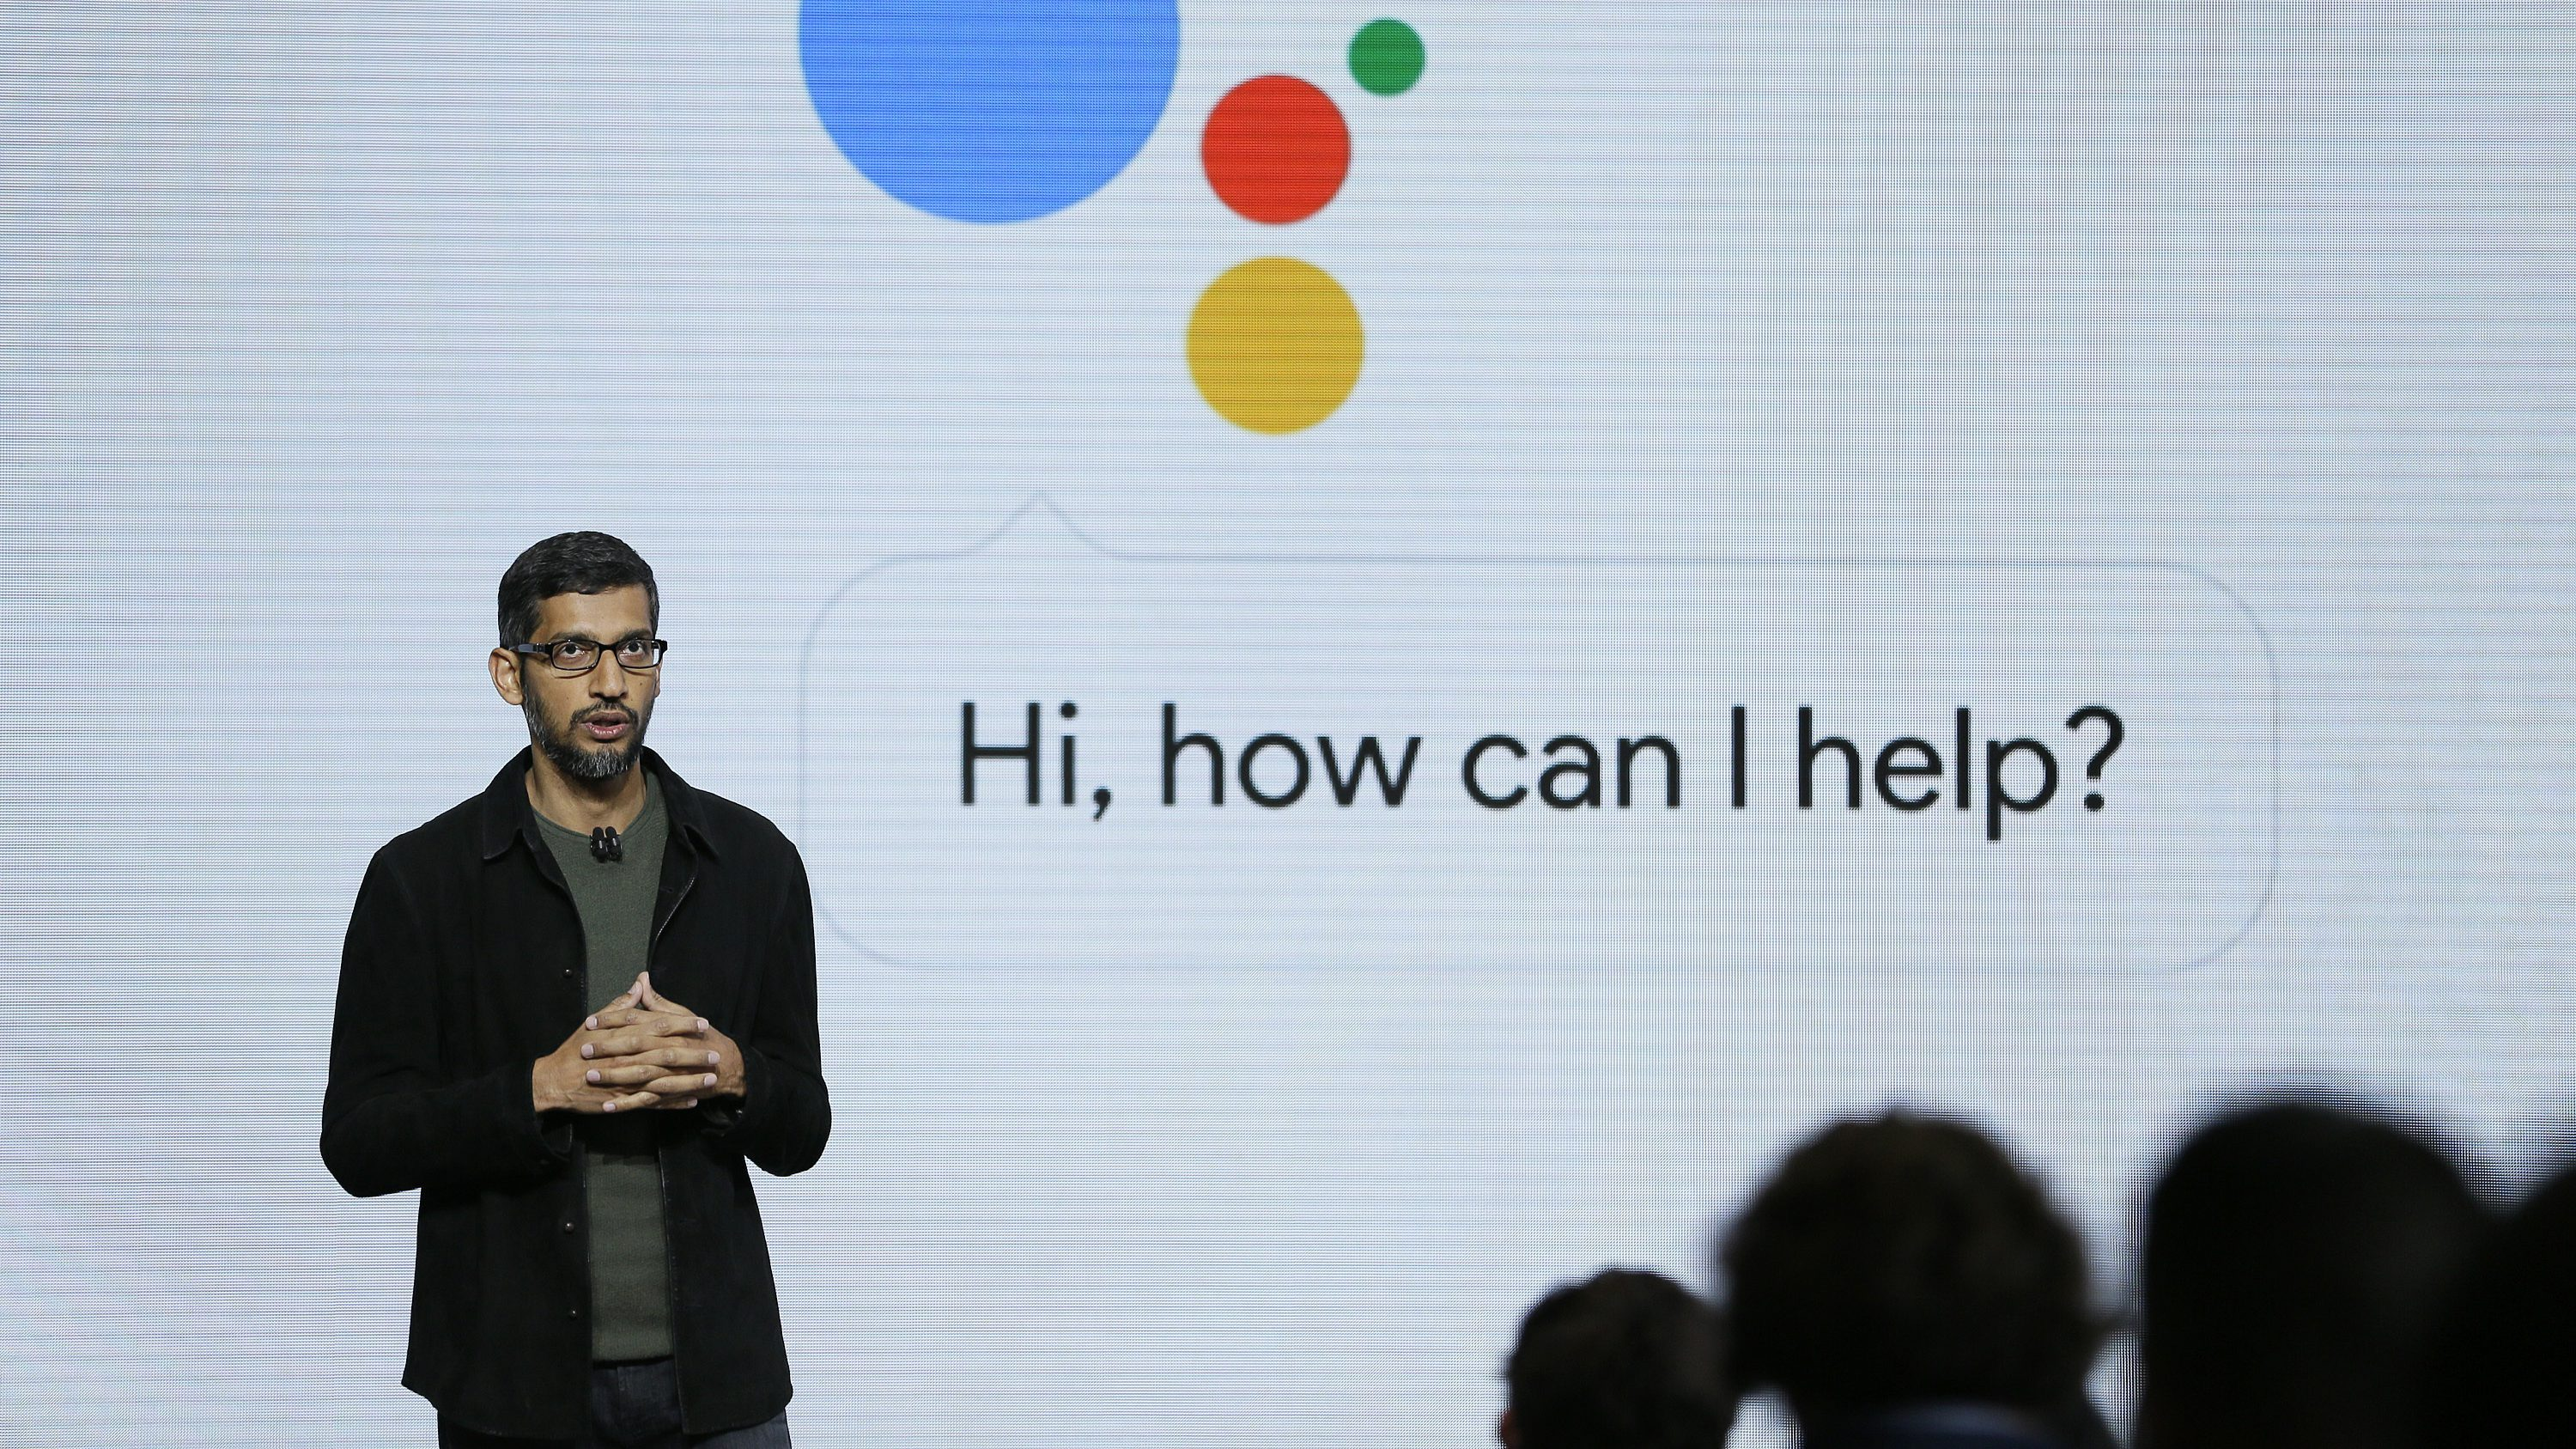 FILE - In this Tuesday, Oct. 4, 2016, file photo, Google CEO Sundar Pichai talks about the new Google Assistant during a product event in San Francisco. Target is jumping into voice-activated shopping as it deepens its relationship with Google, offering thousands of items found in the store except for perishables like fruit and milk. The move is happening as Google says shopping will be available later in 2017 through Google Assistant on iPhone and Android phones, joining its Google Home device and Android TV. (AP Photo/Eric Risberg, File)